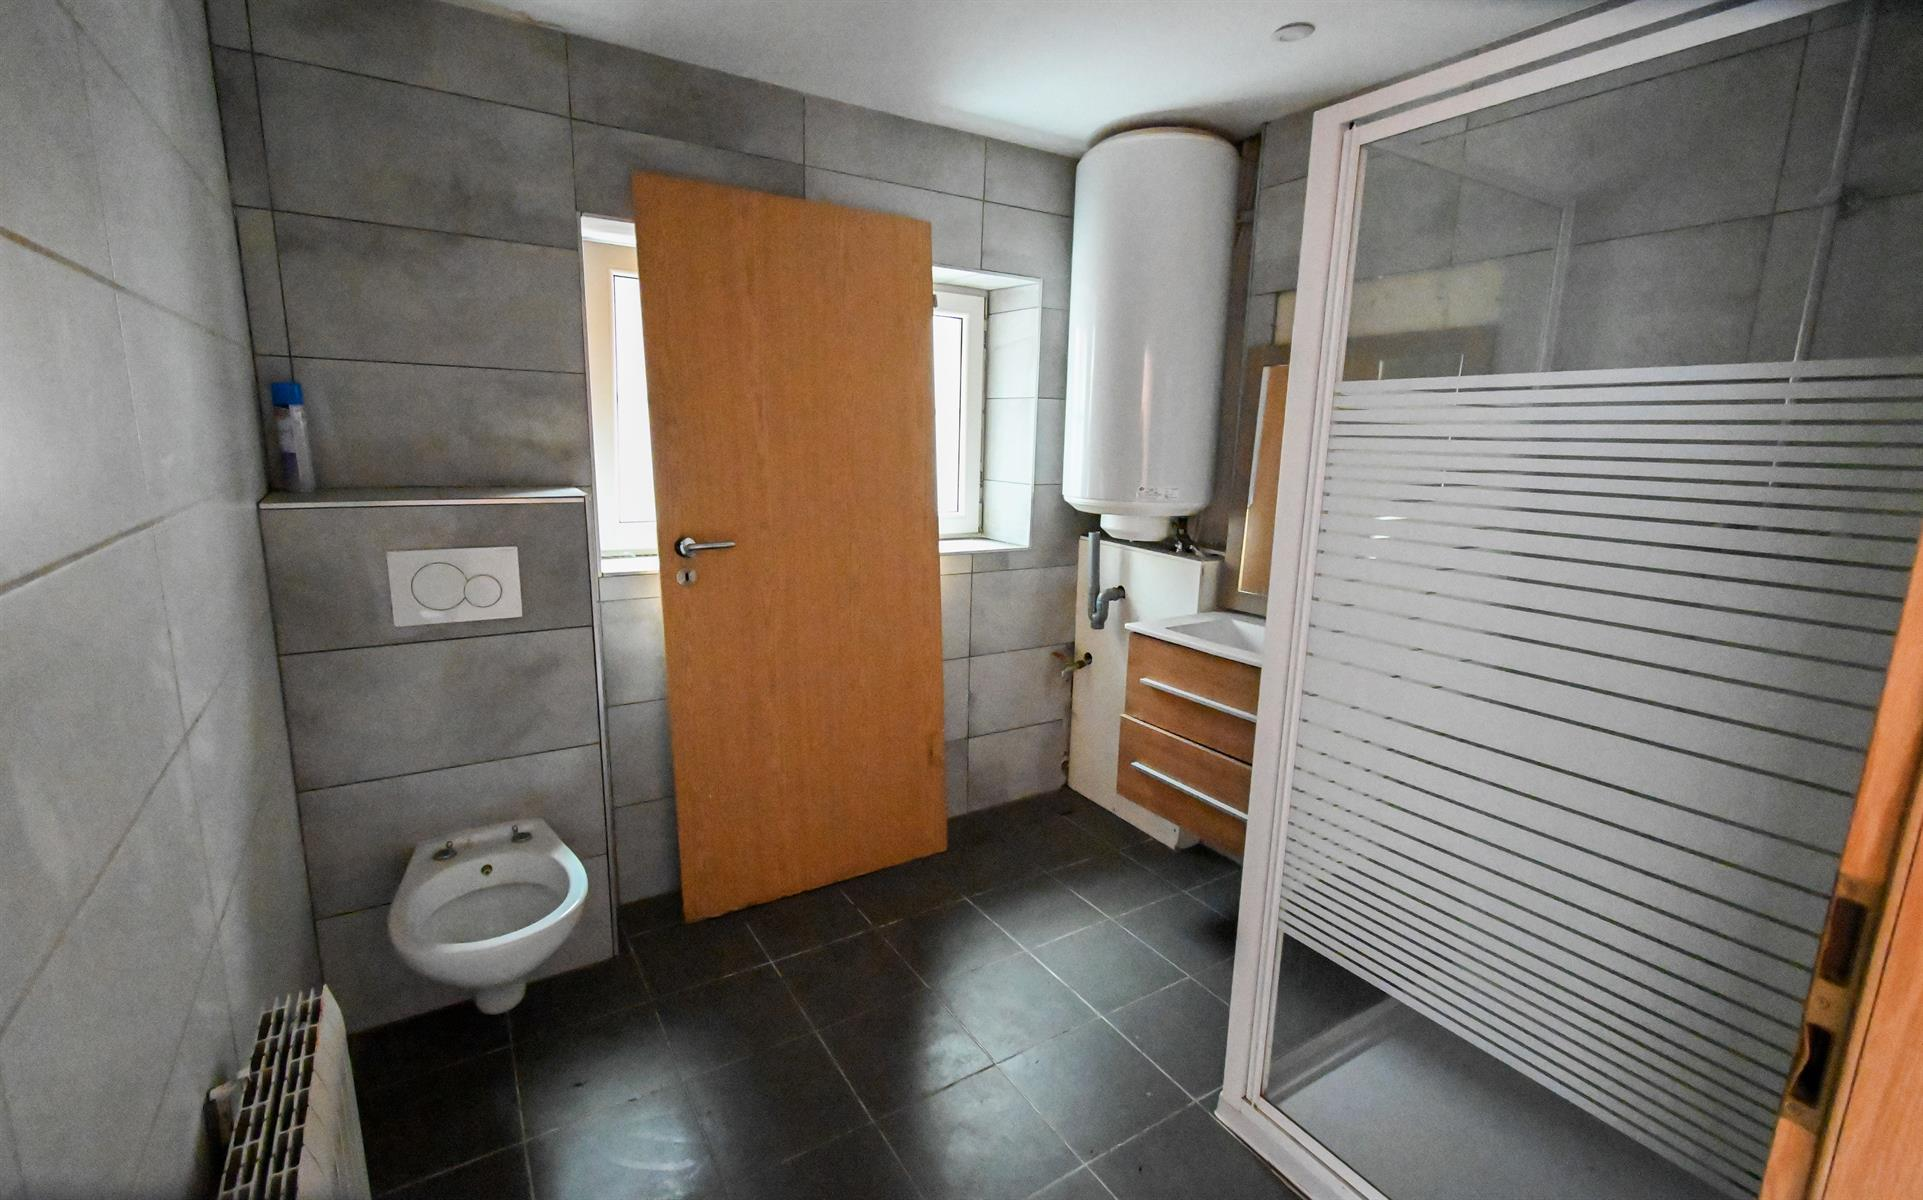 Appartement - Dison - #4371770-5